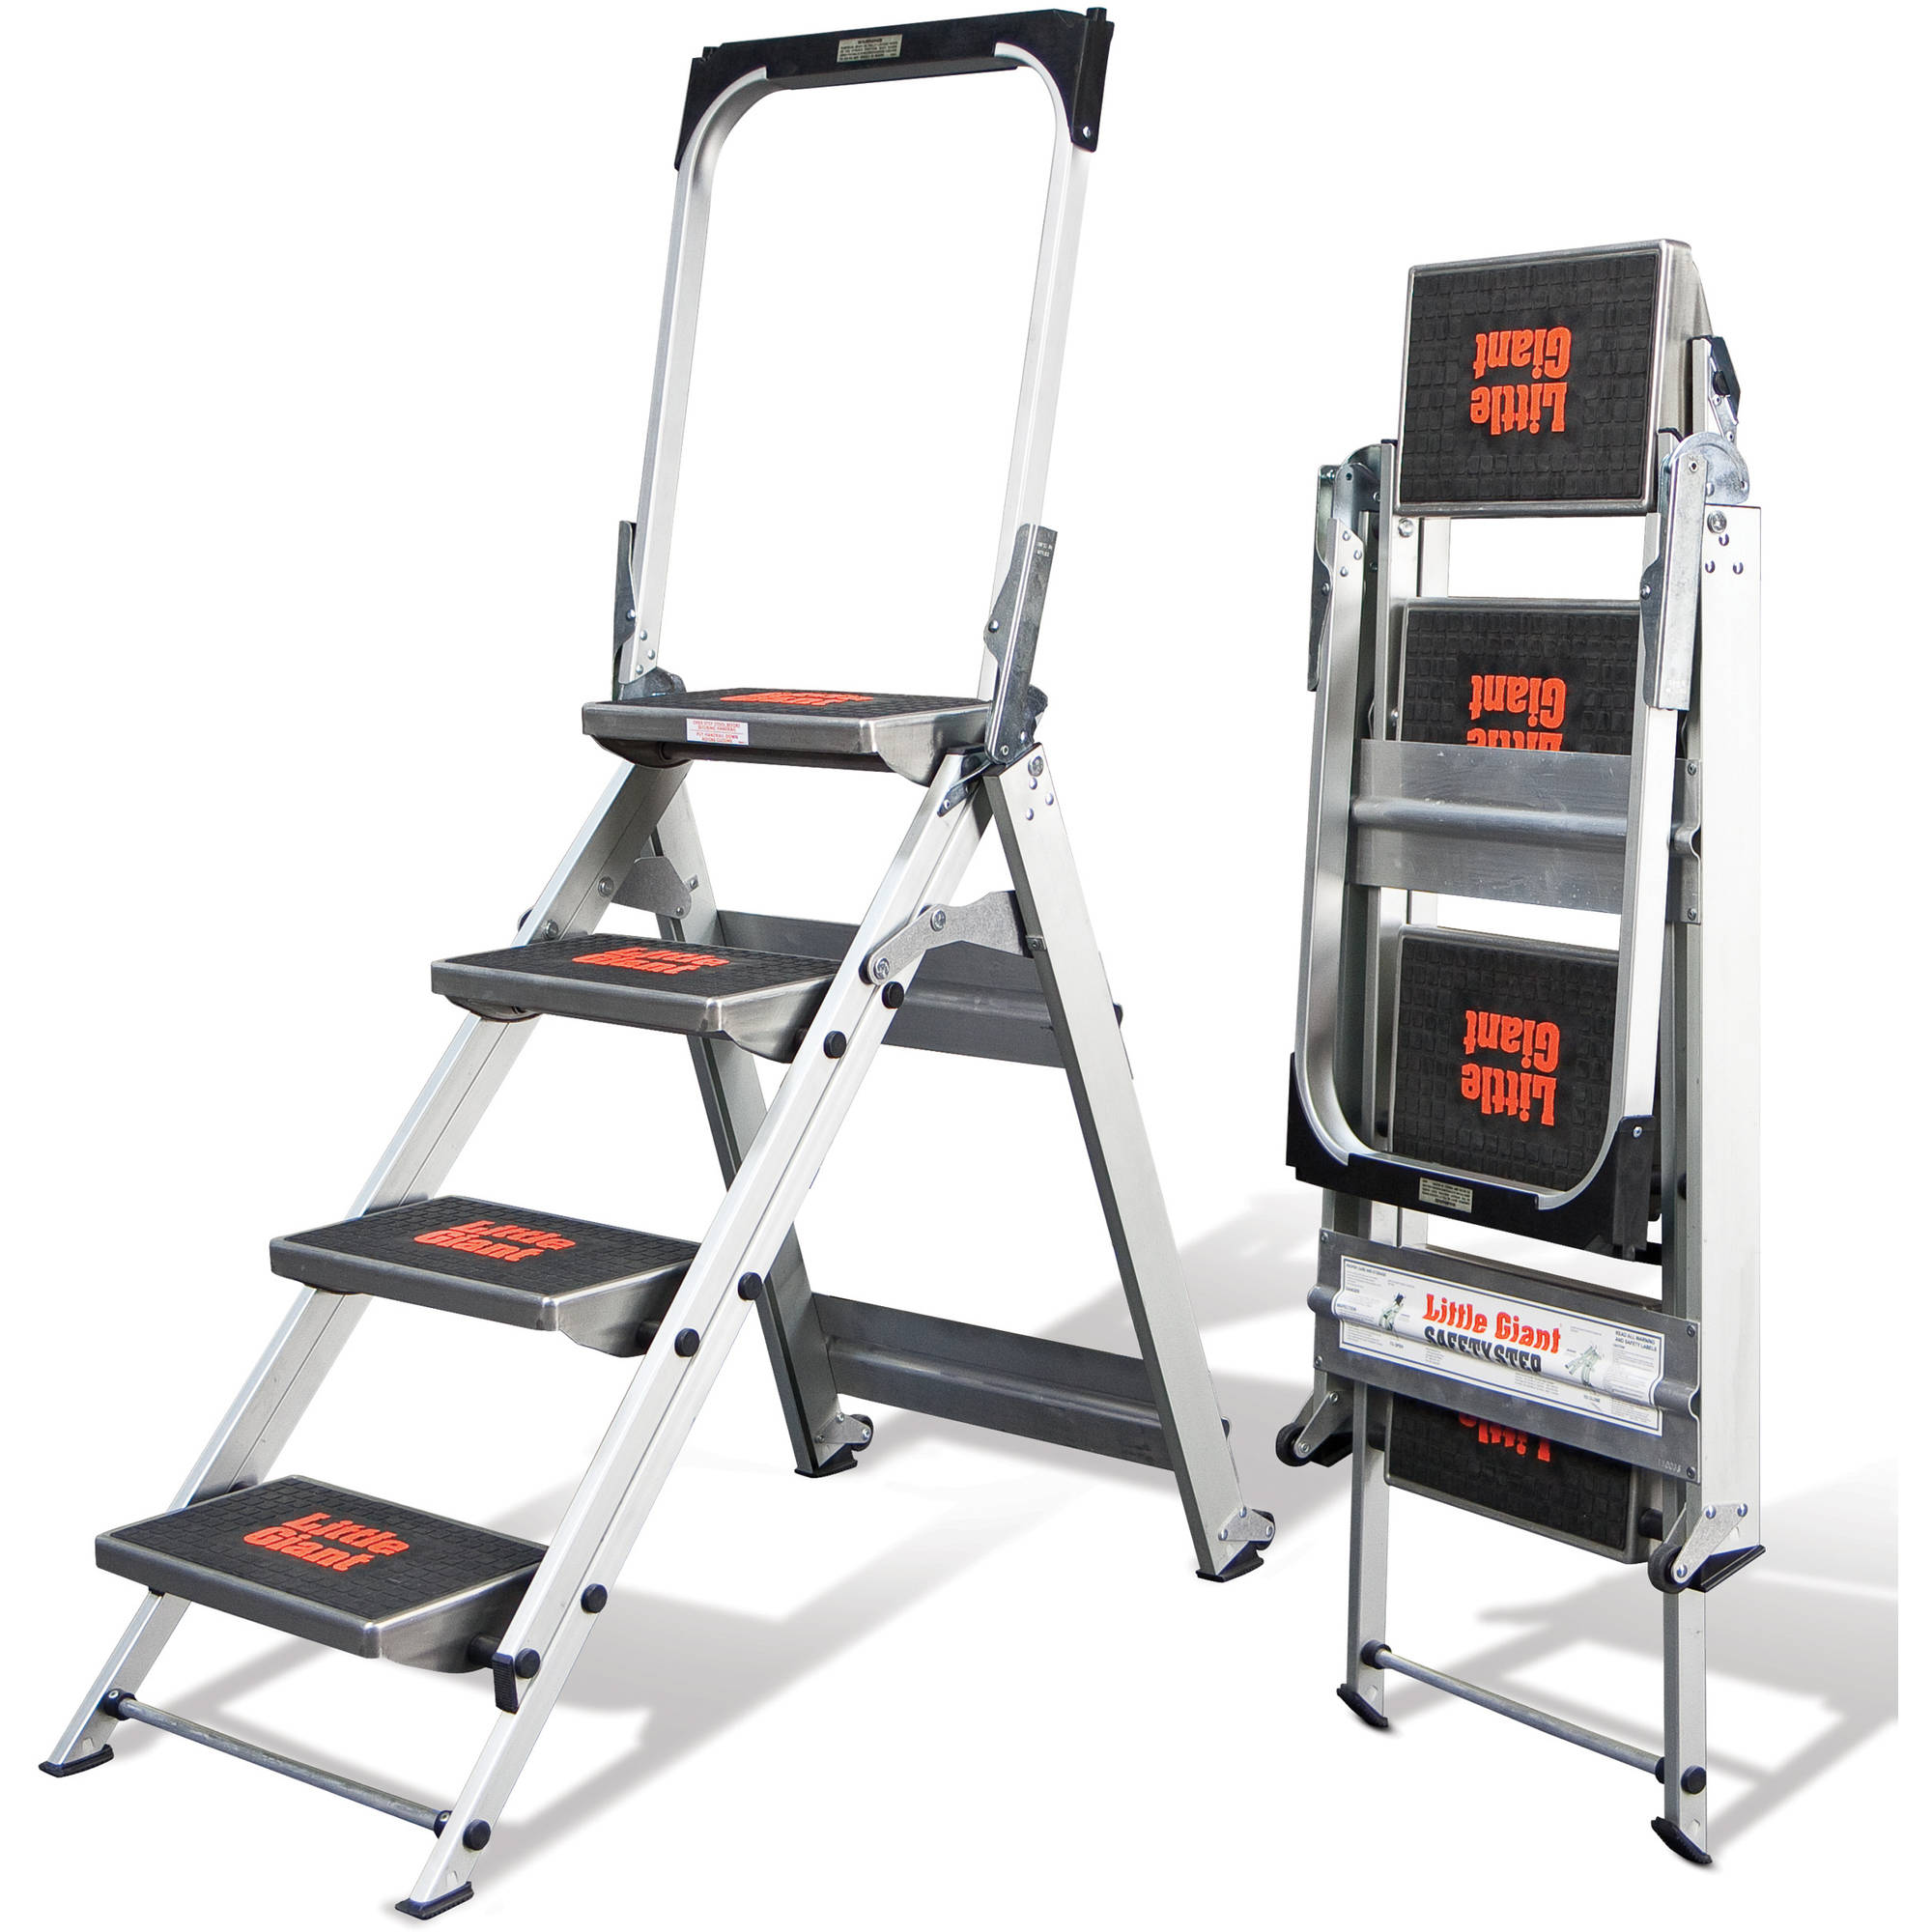 Little Giant Safety Step, Model 4 step, 300 lbs capacity rated, aluminum stepstool